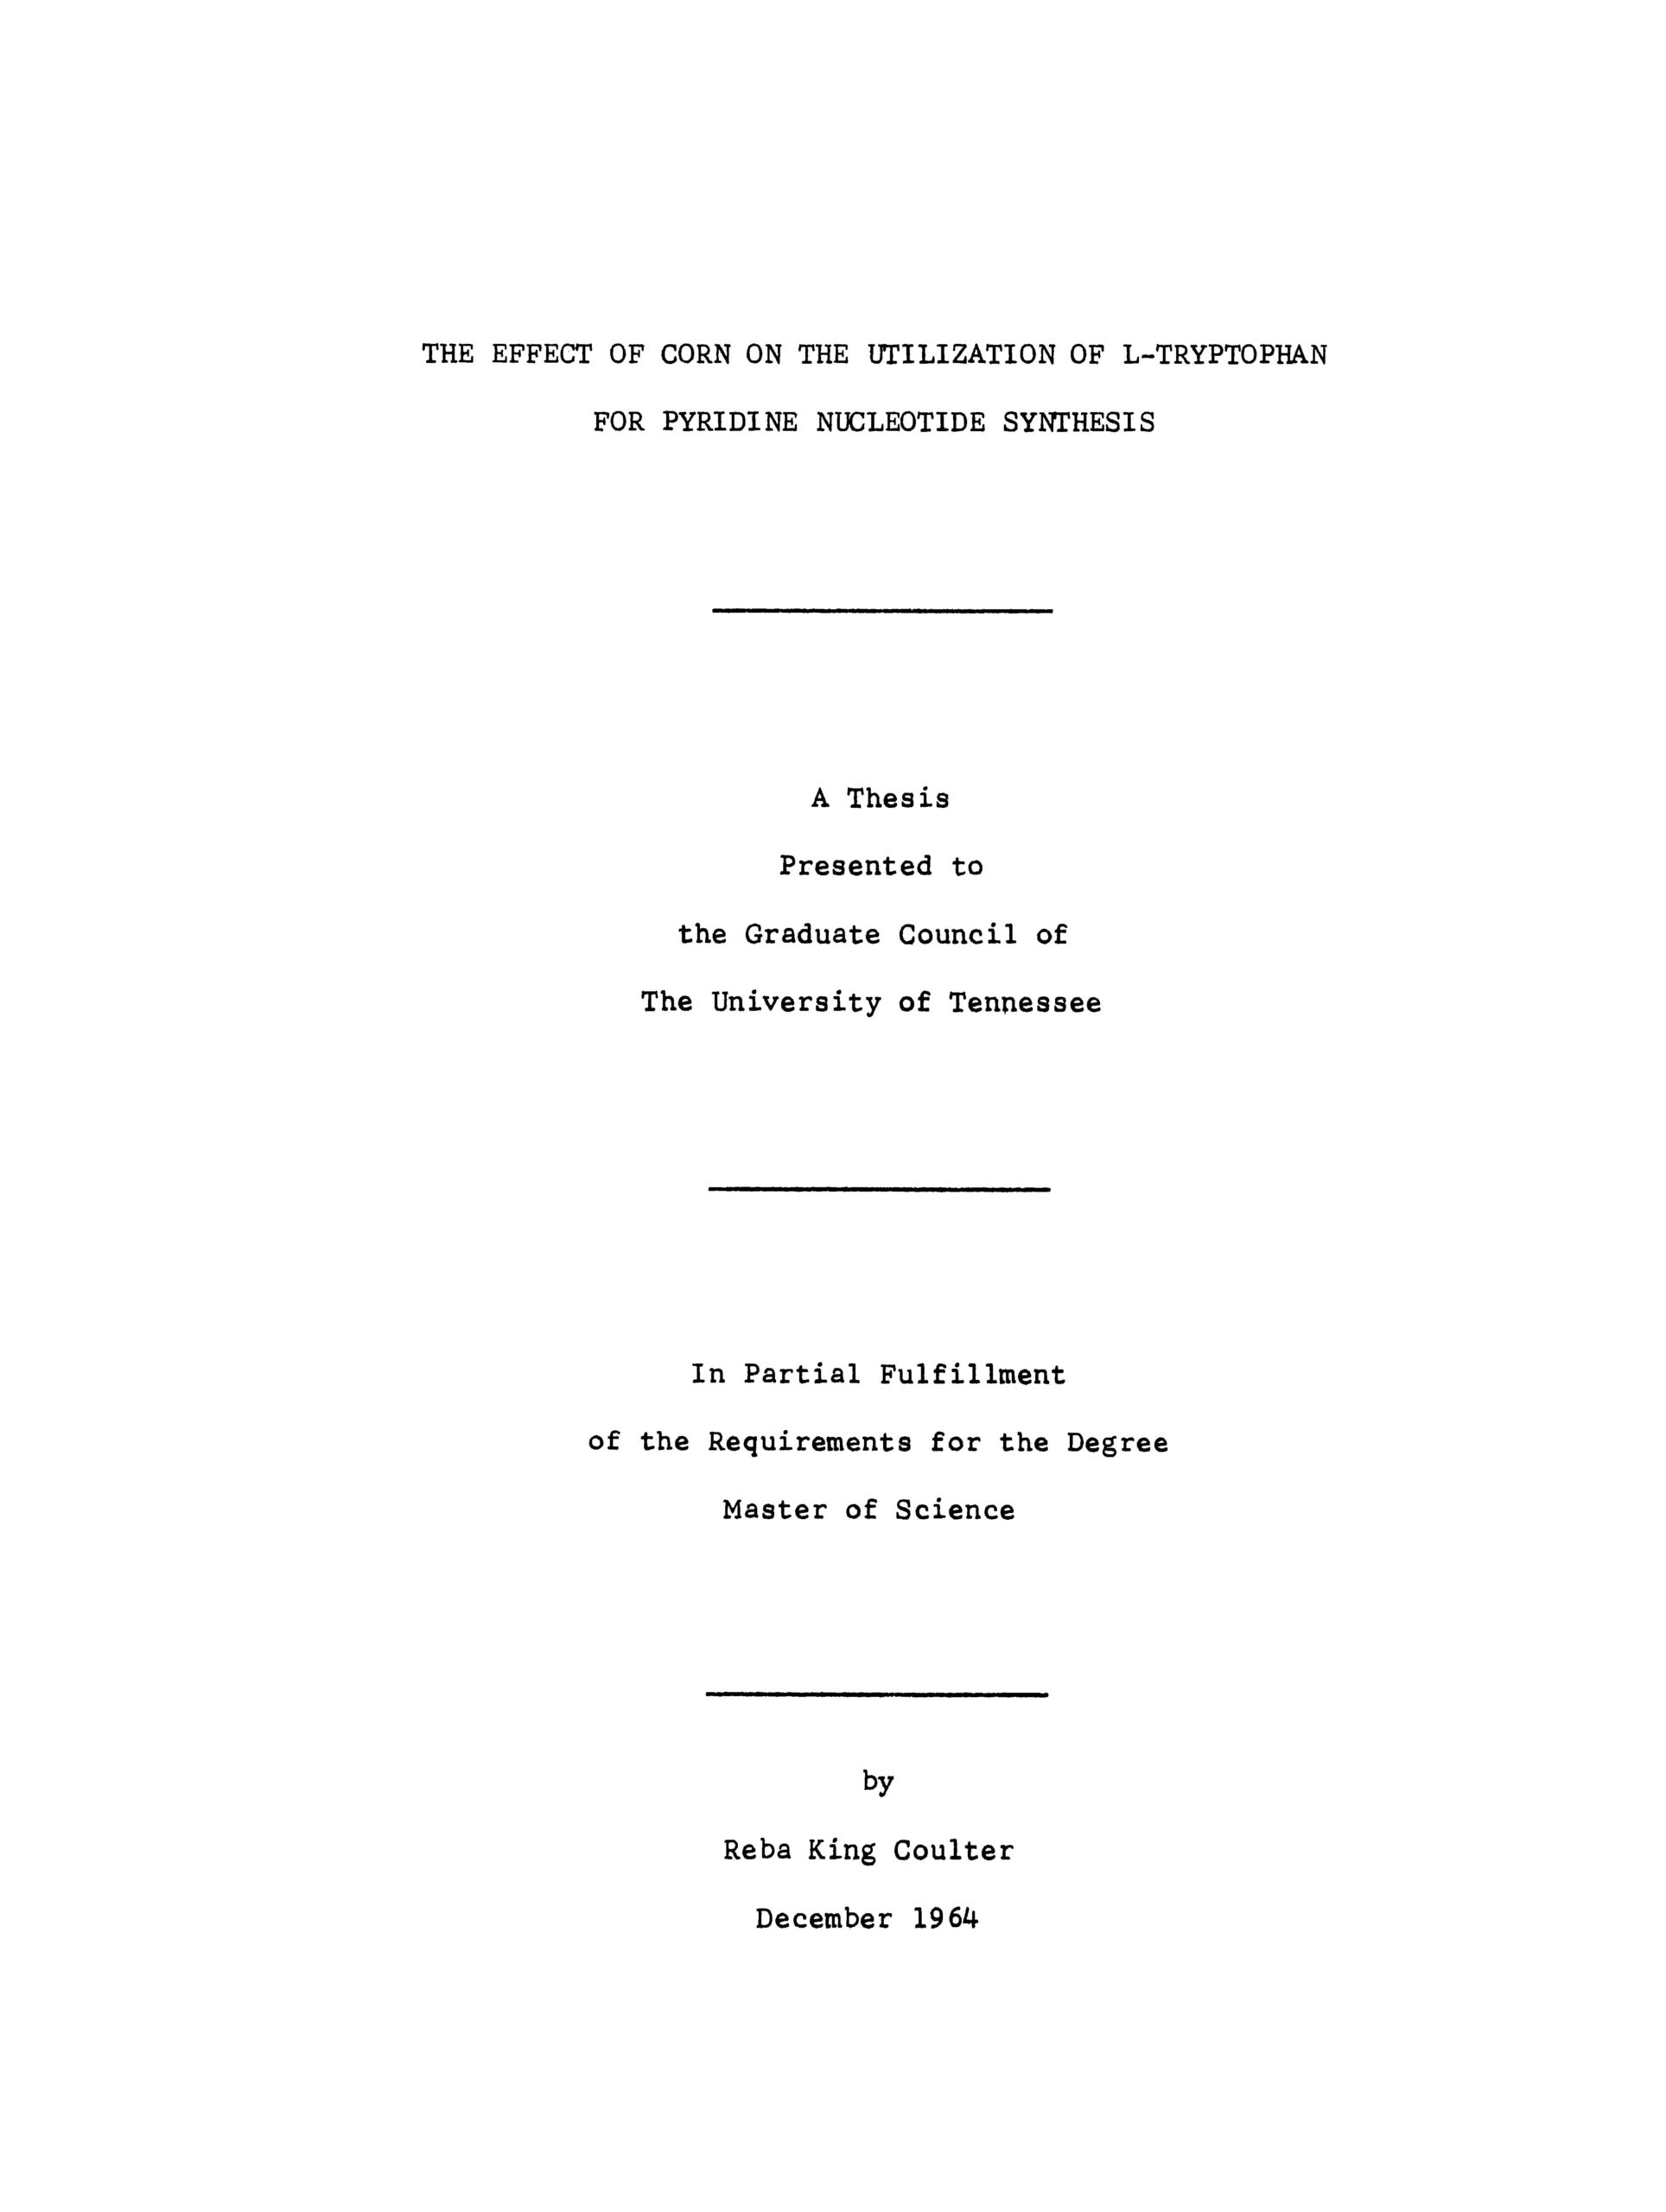 Title page from The effect of corn on the utilization of L-tryptophan for pyridin